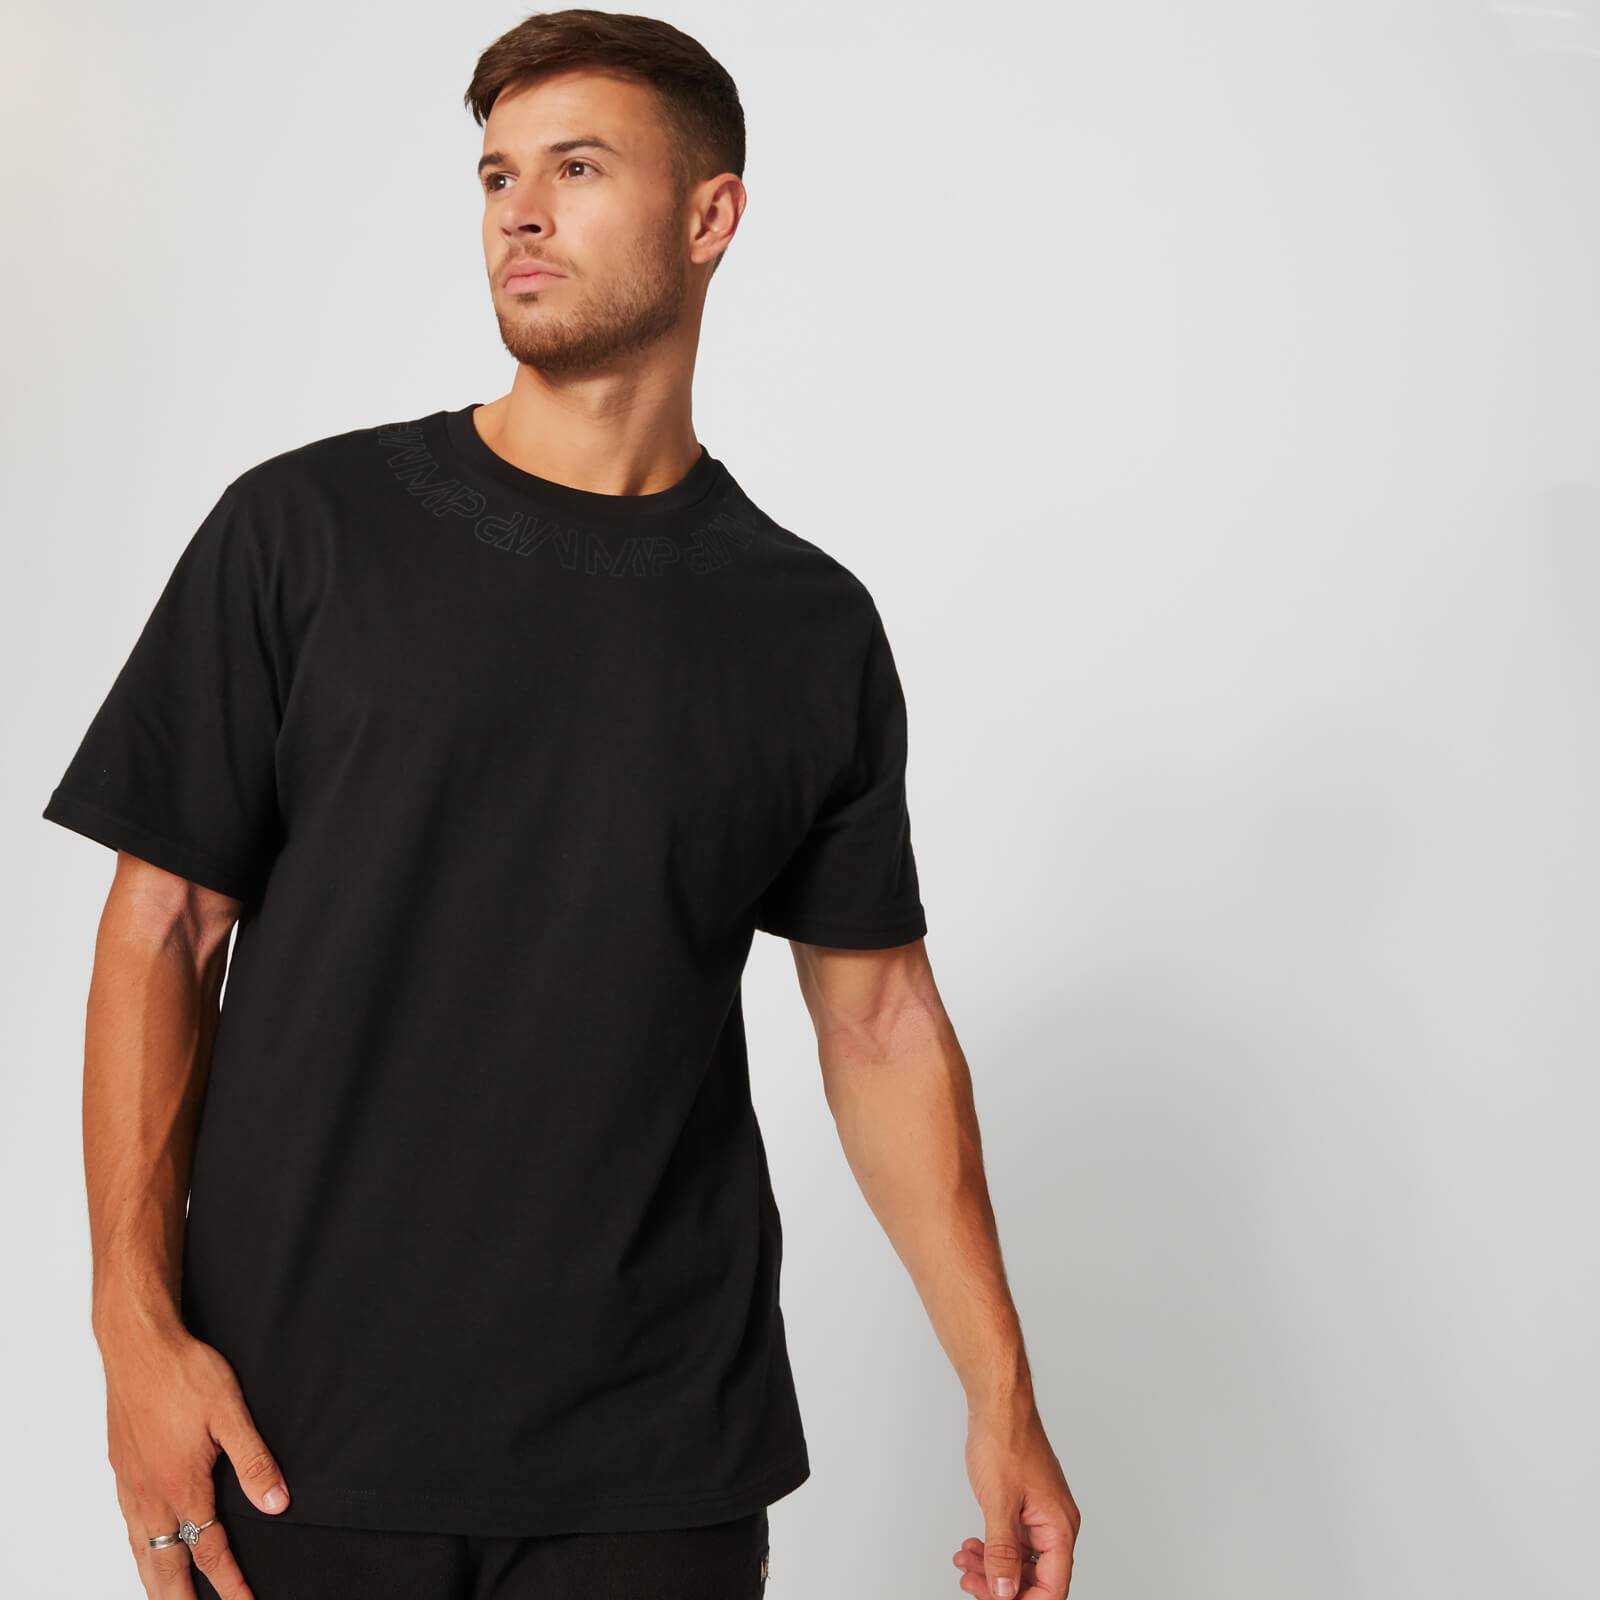 Myprotein MP Neckline Graphic T-Shirt - Black - XL